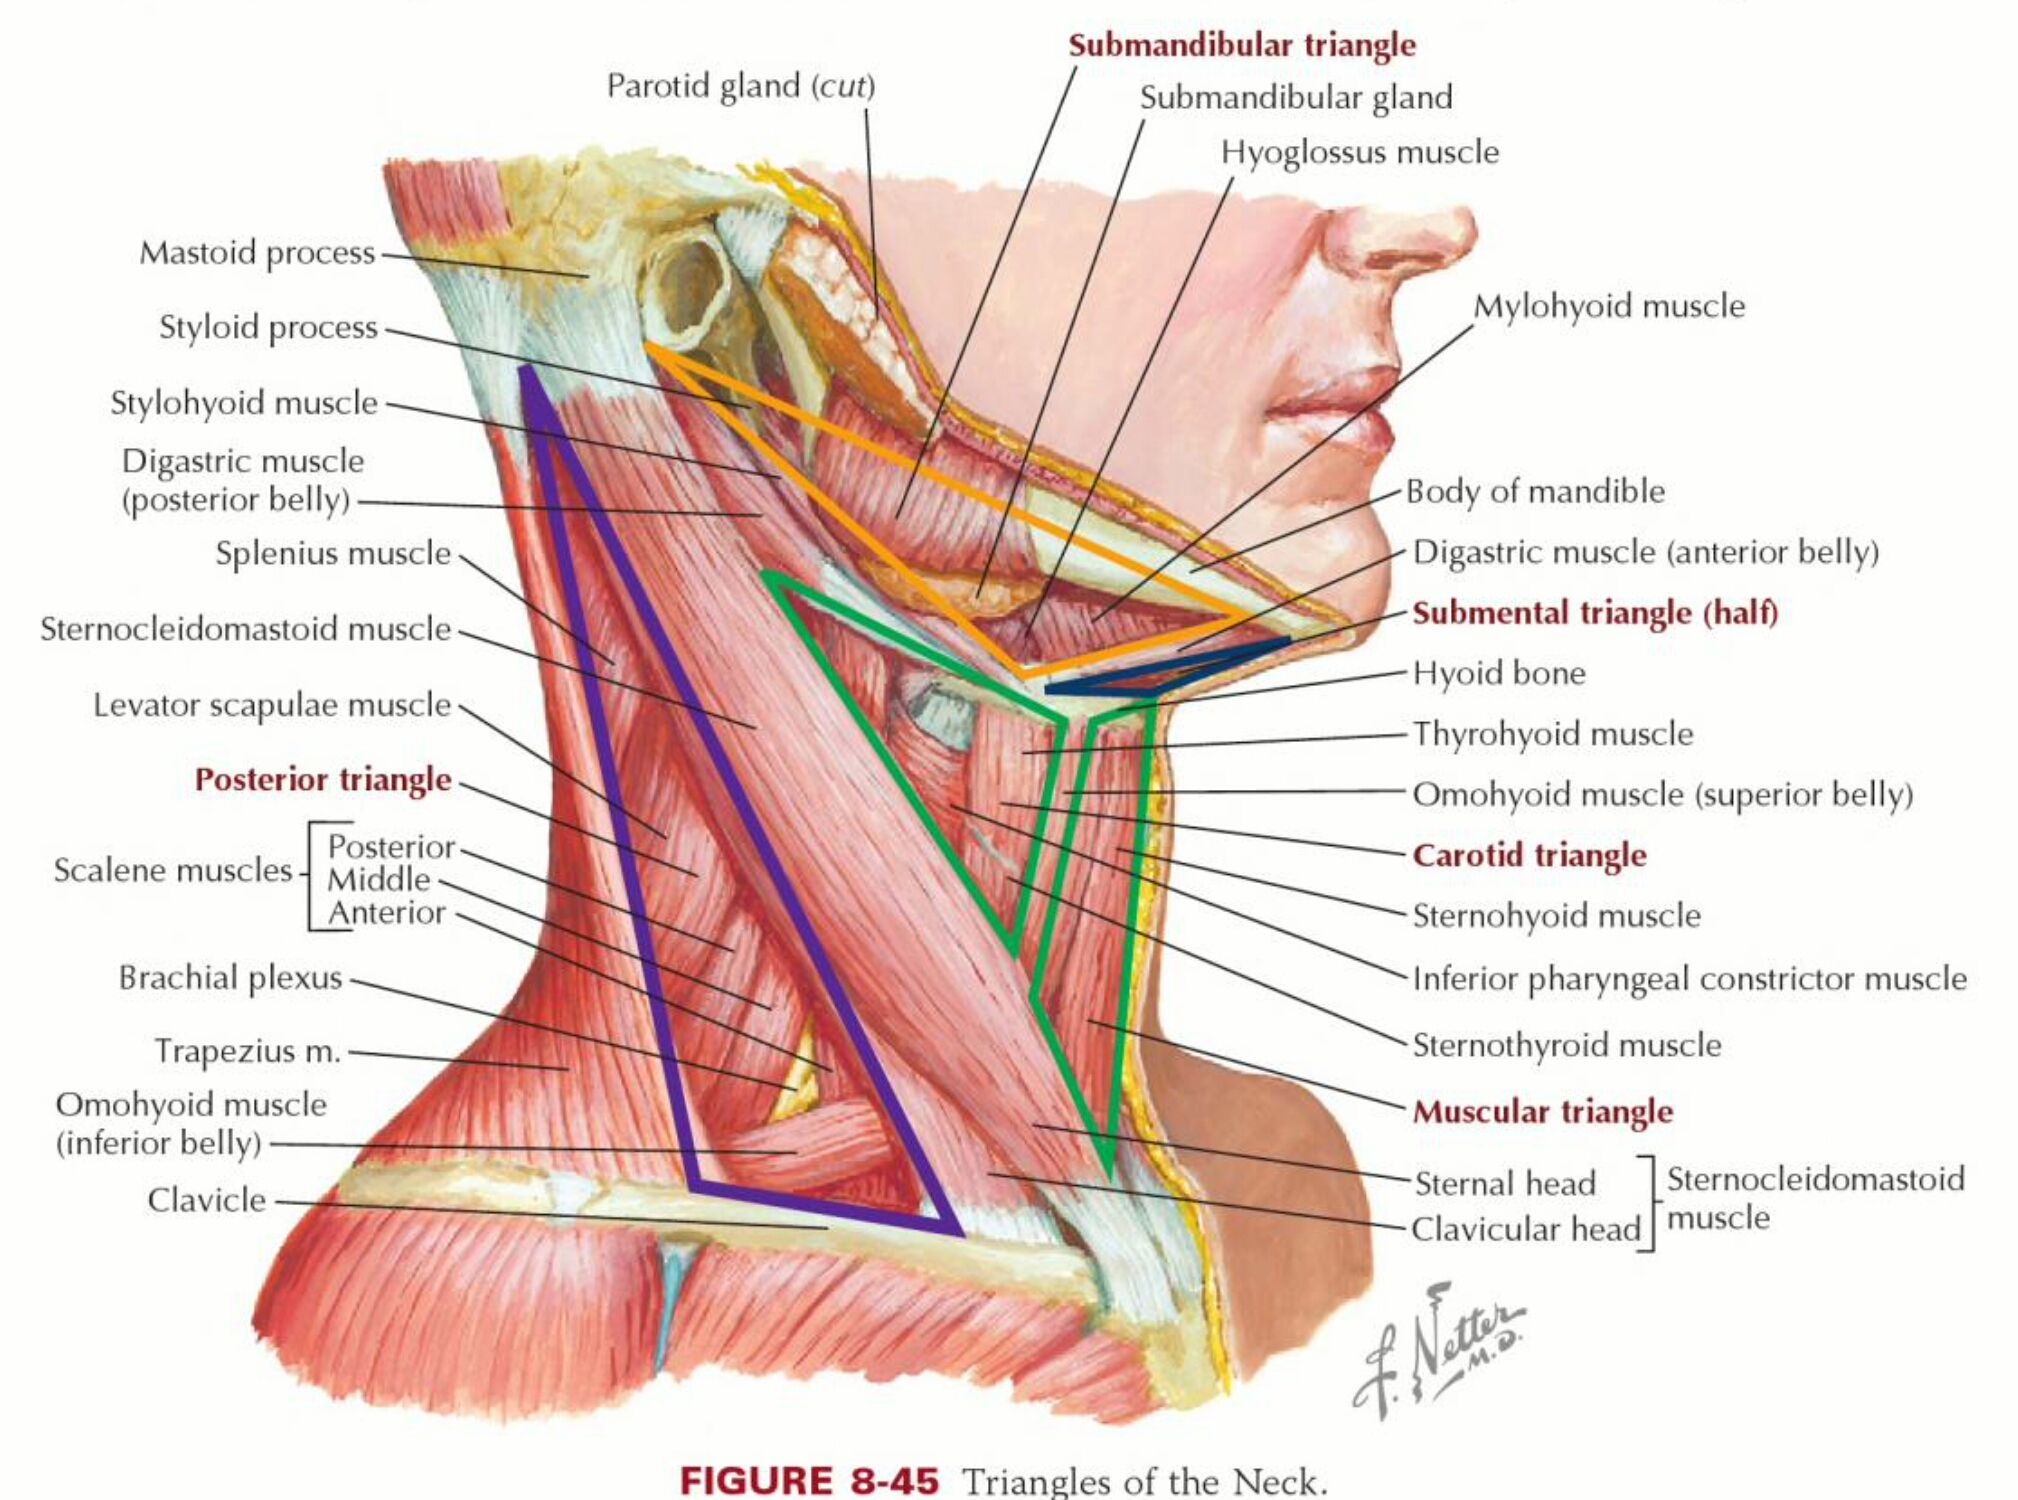 best 20+ sternocleidomastoid muscle ideas on pinterest | muscles, Human Body